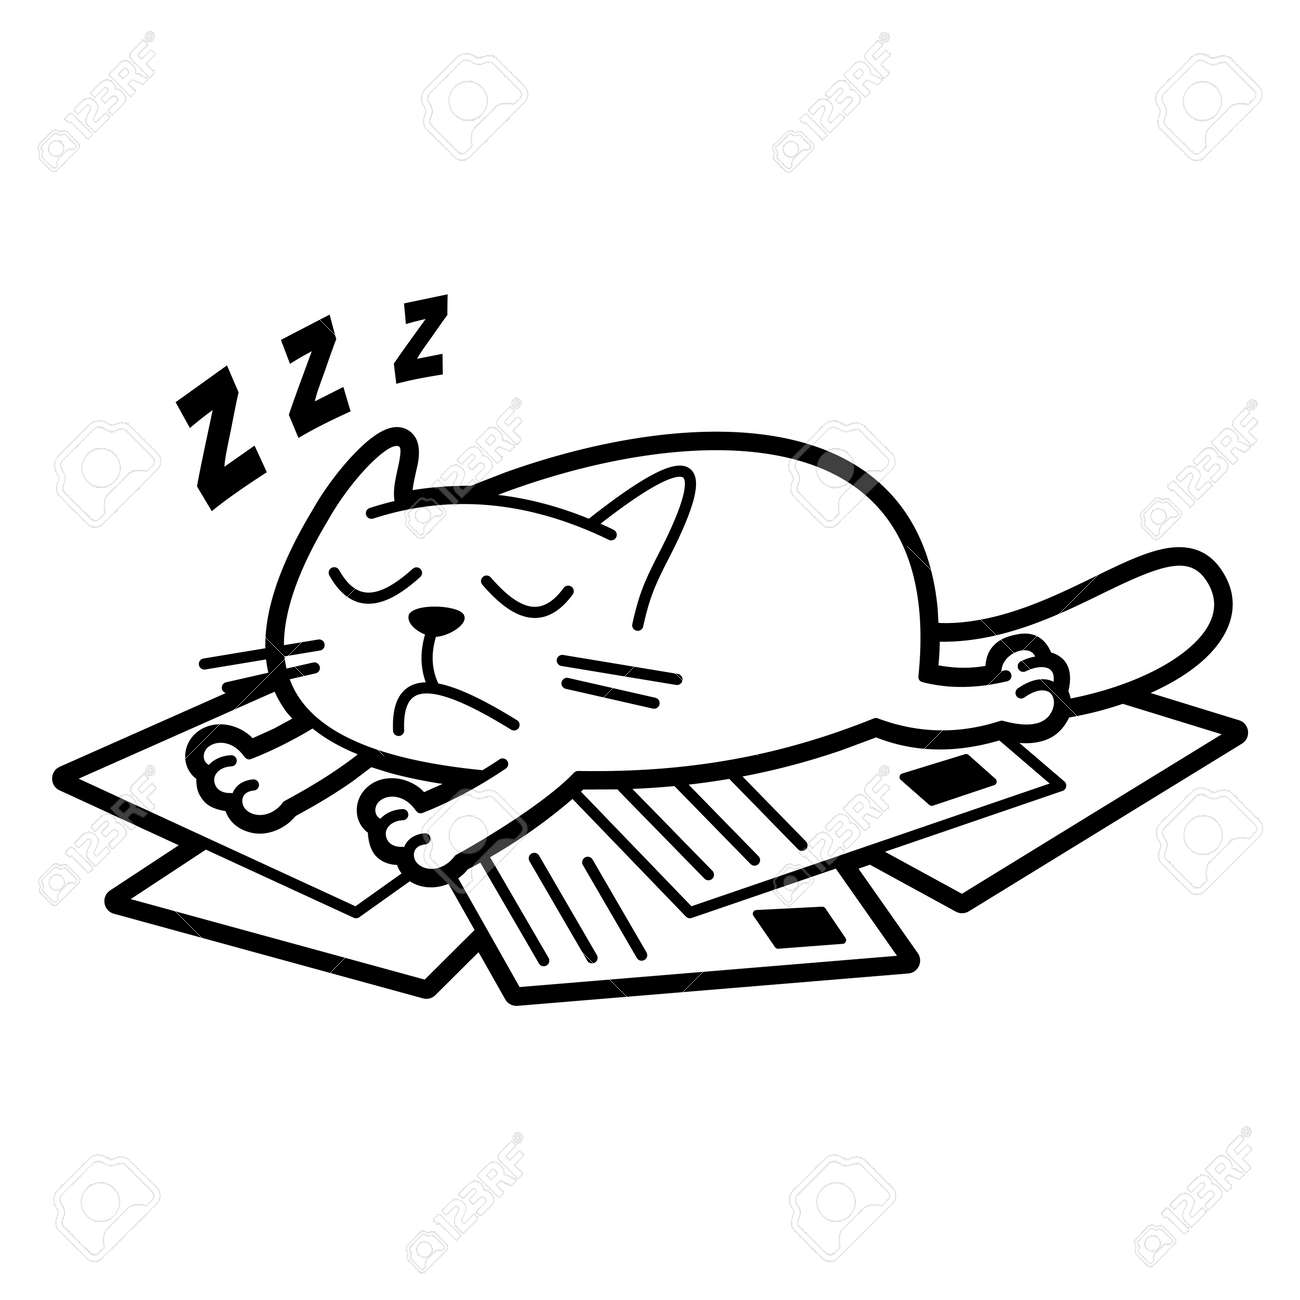 Cat Cartoon Character Coloring Page Black And White Vector ...